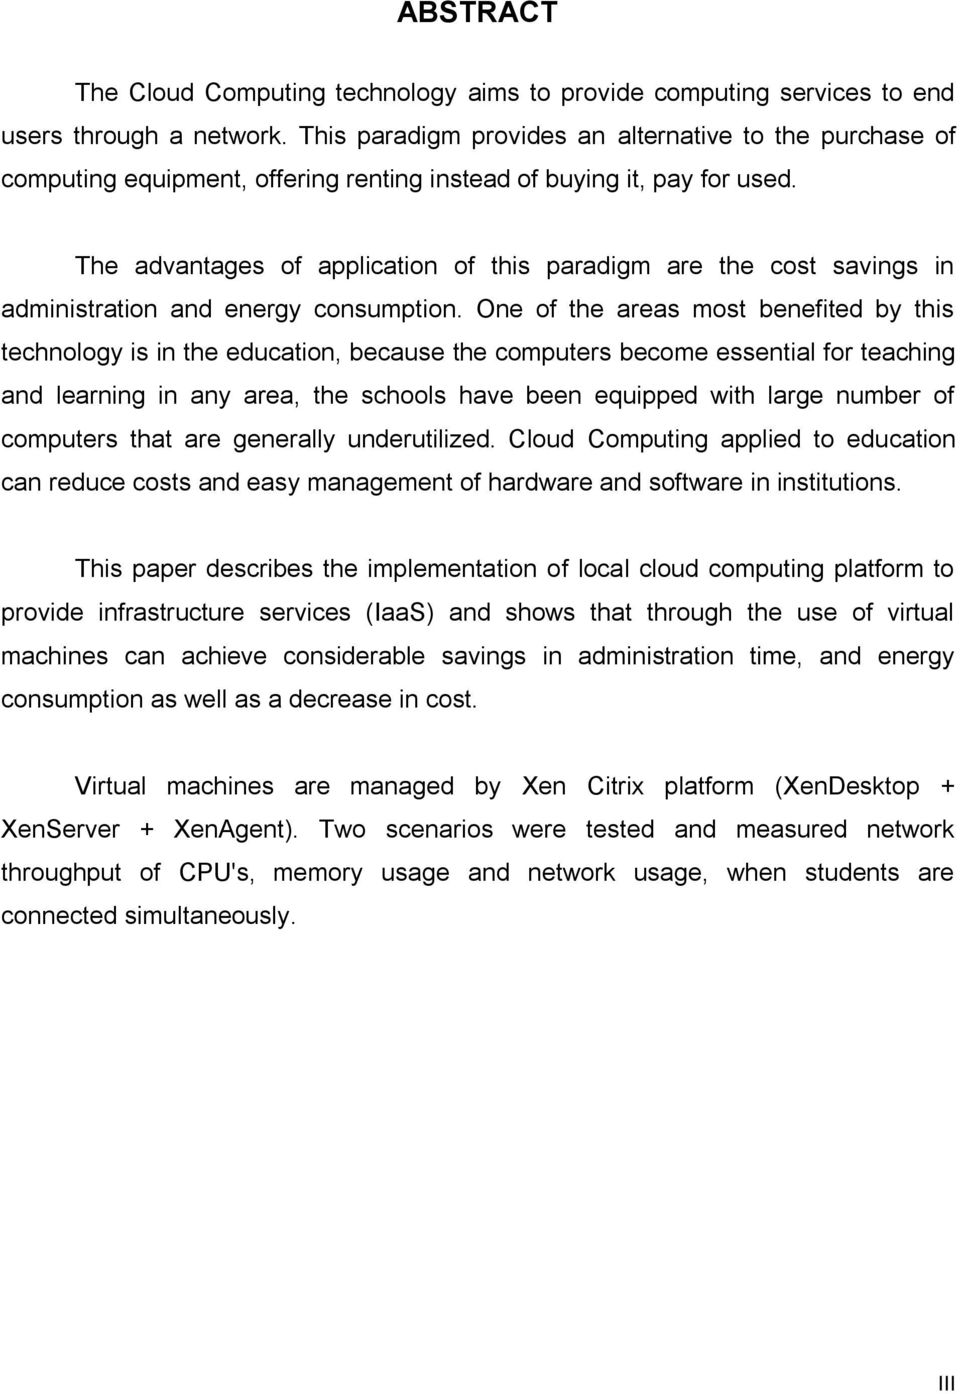 The advantages of application of this paradigm are the cost savings in administration and energy consumption.